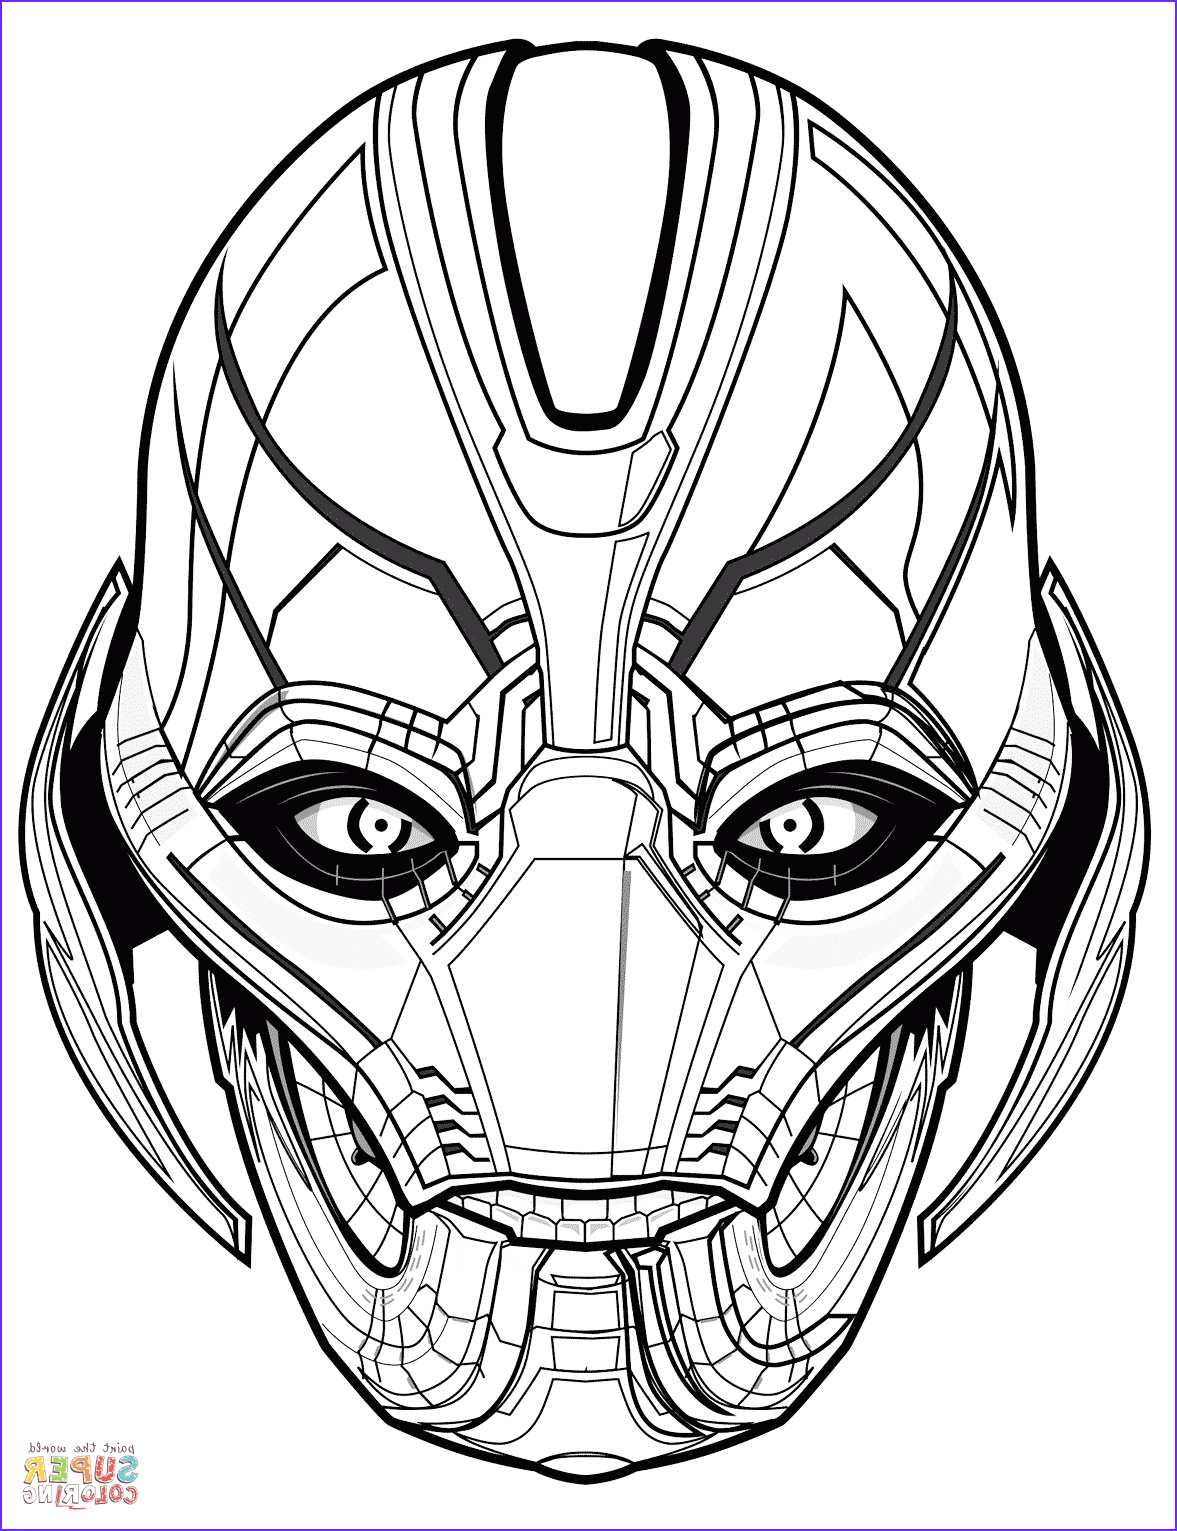 Avengers Coloring Awesome Collection Avengers Ultron Coloring Page